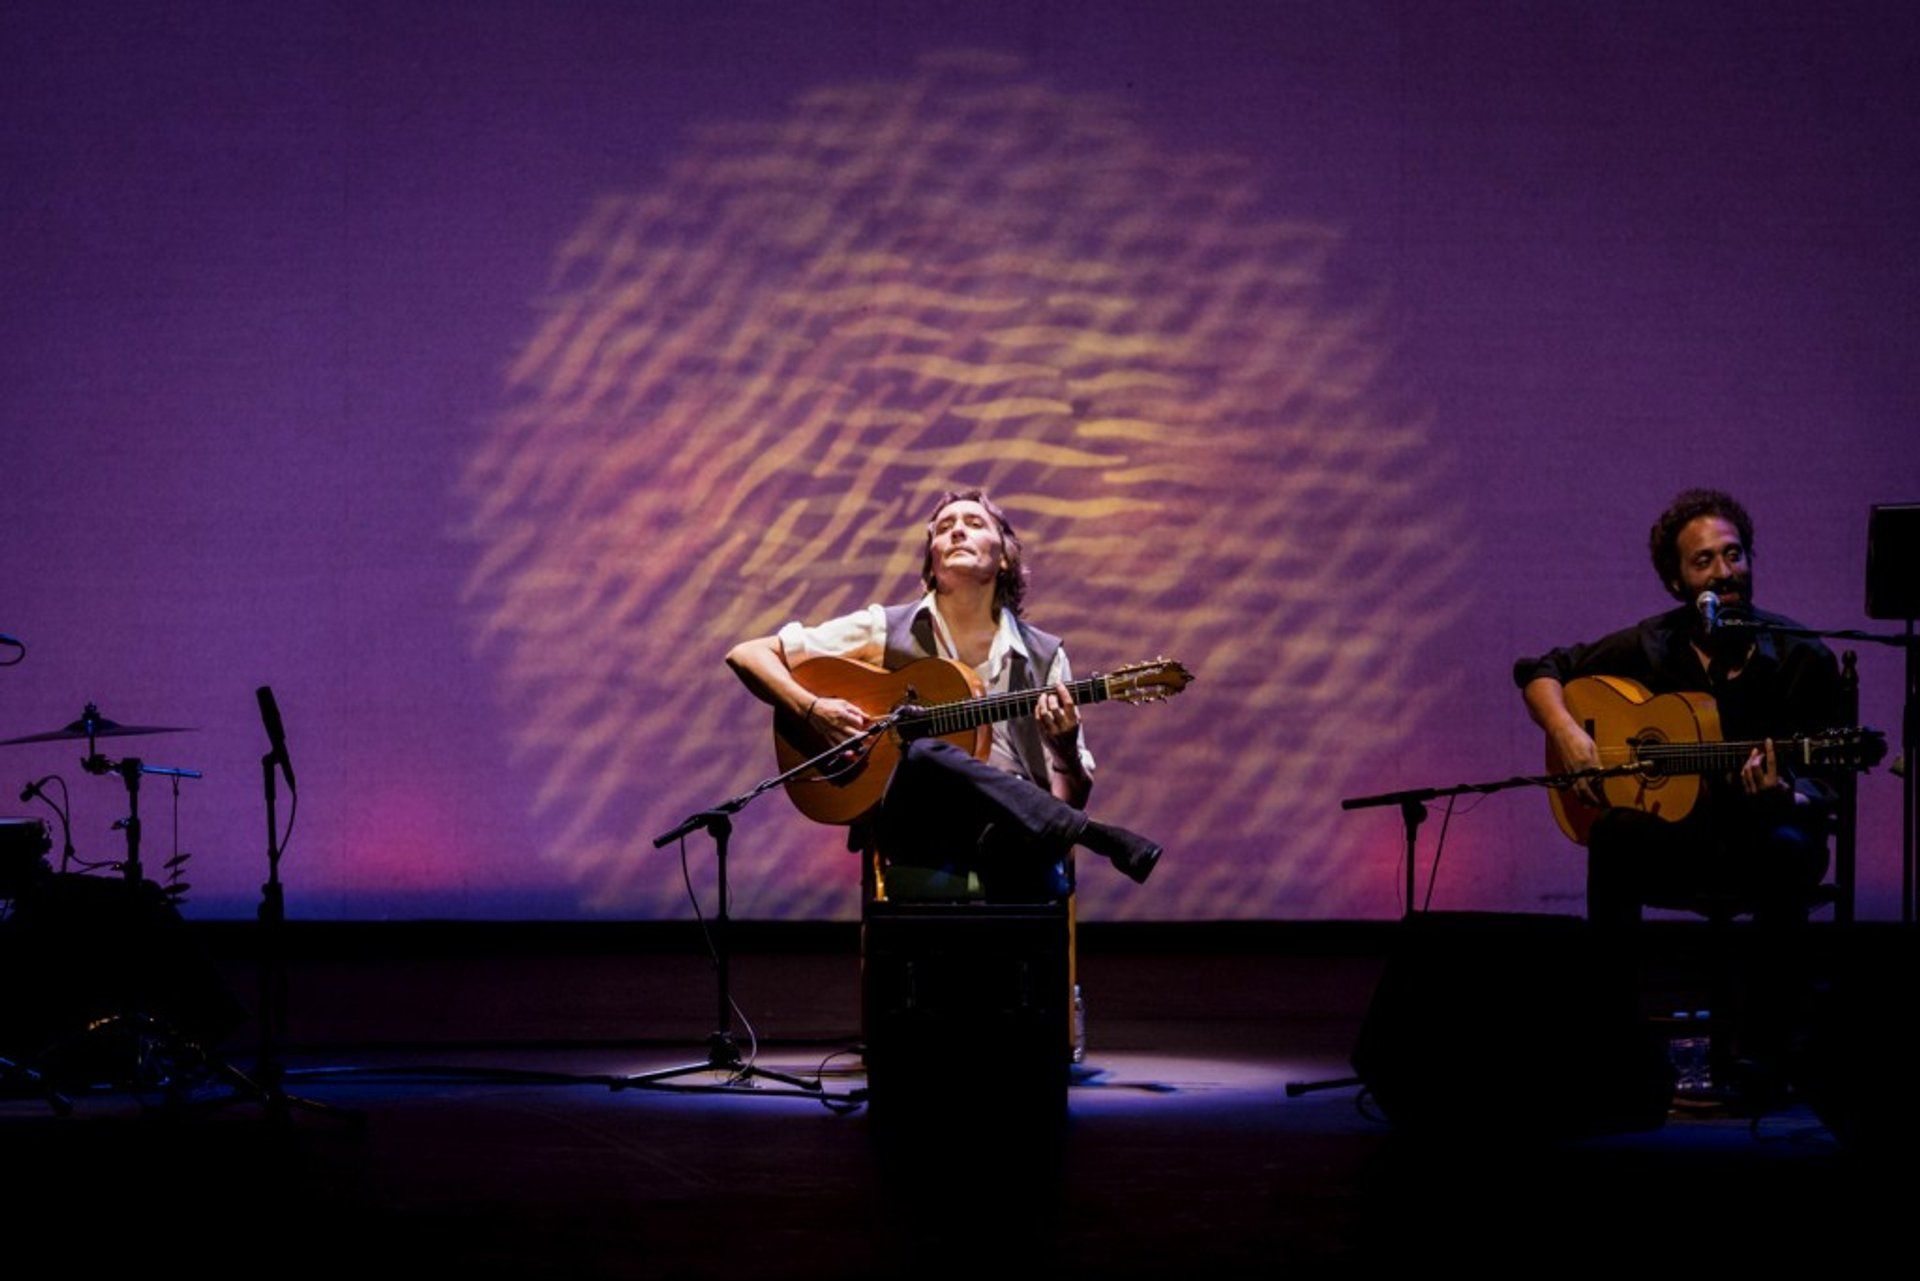 Best time for La Bienal de Flamenco in Seville